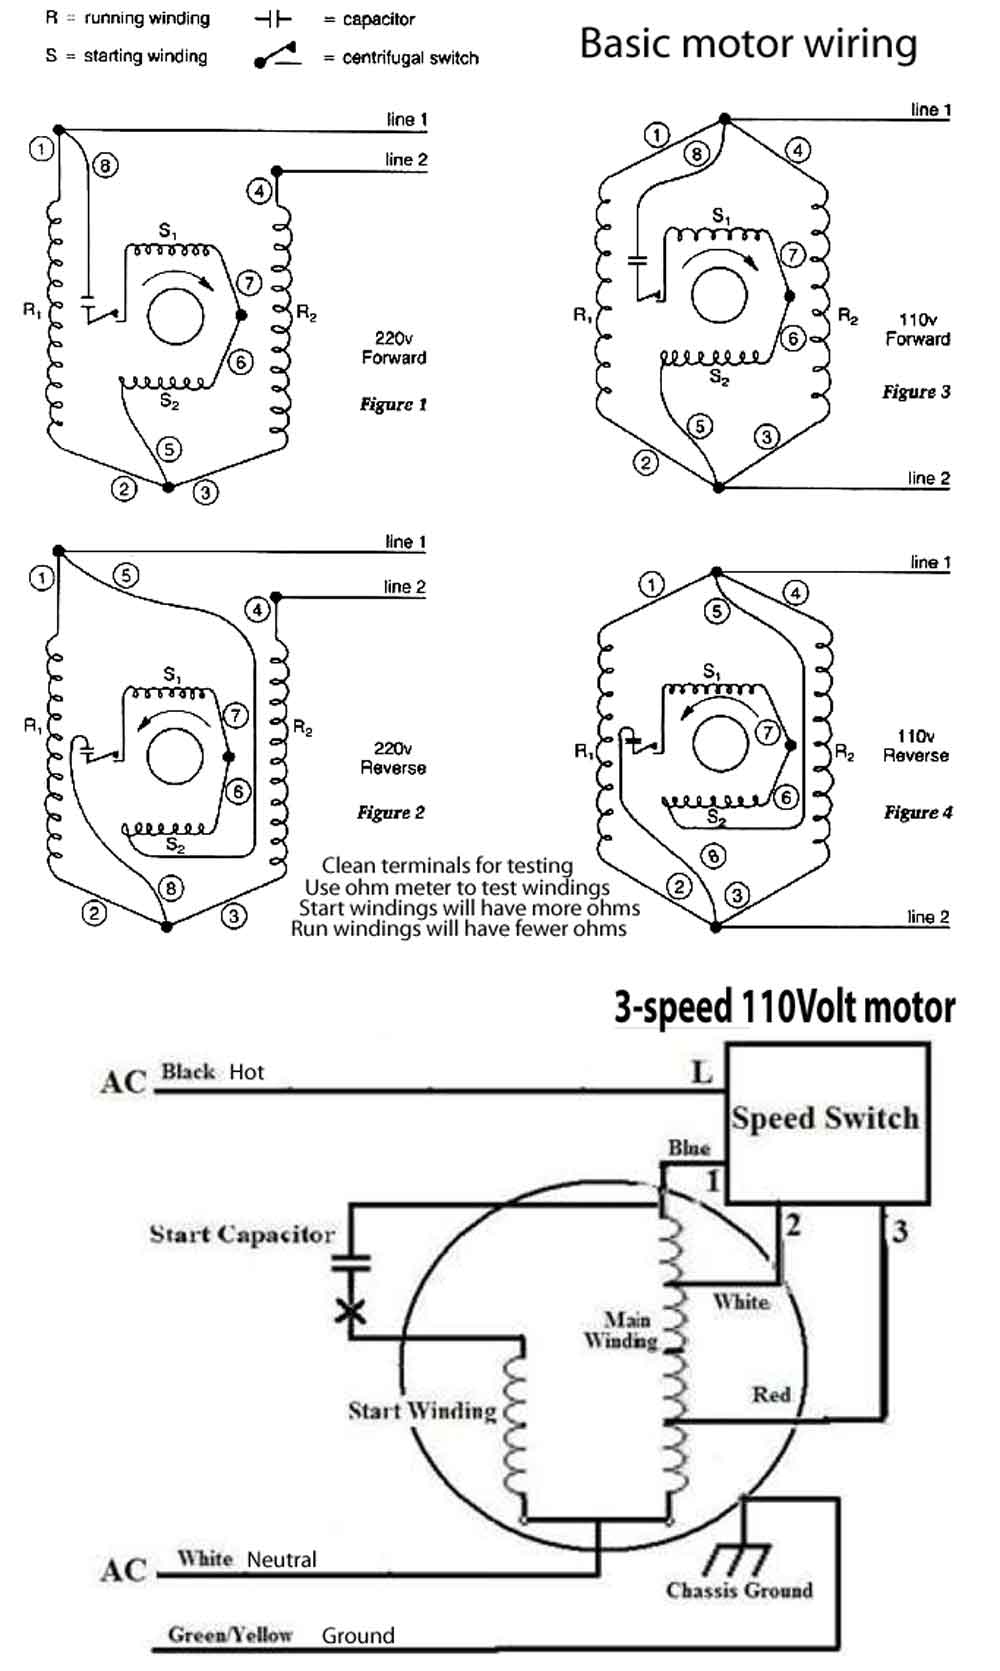 Motor wiring 500 how to wire 3 speed fan switch electric motor switch wiring diagram at gsmportal.co